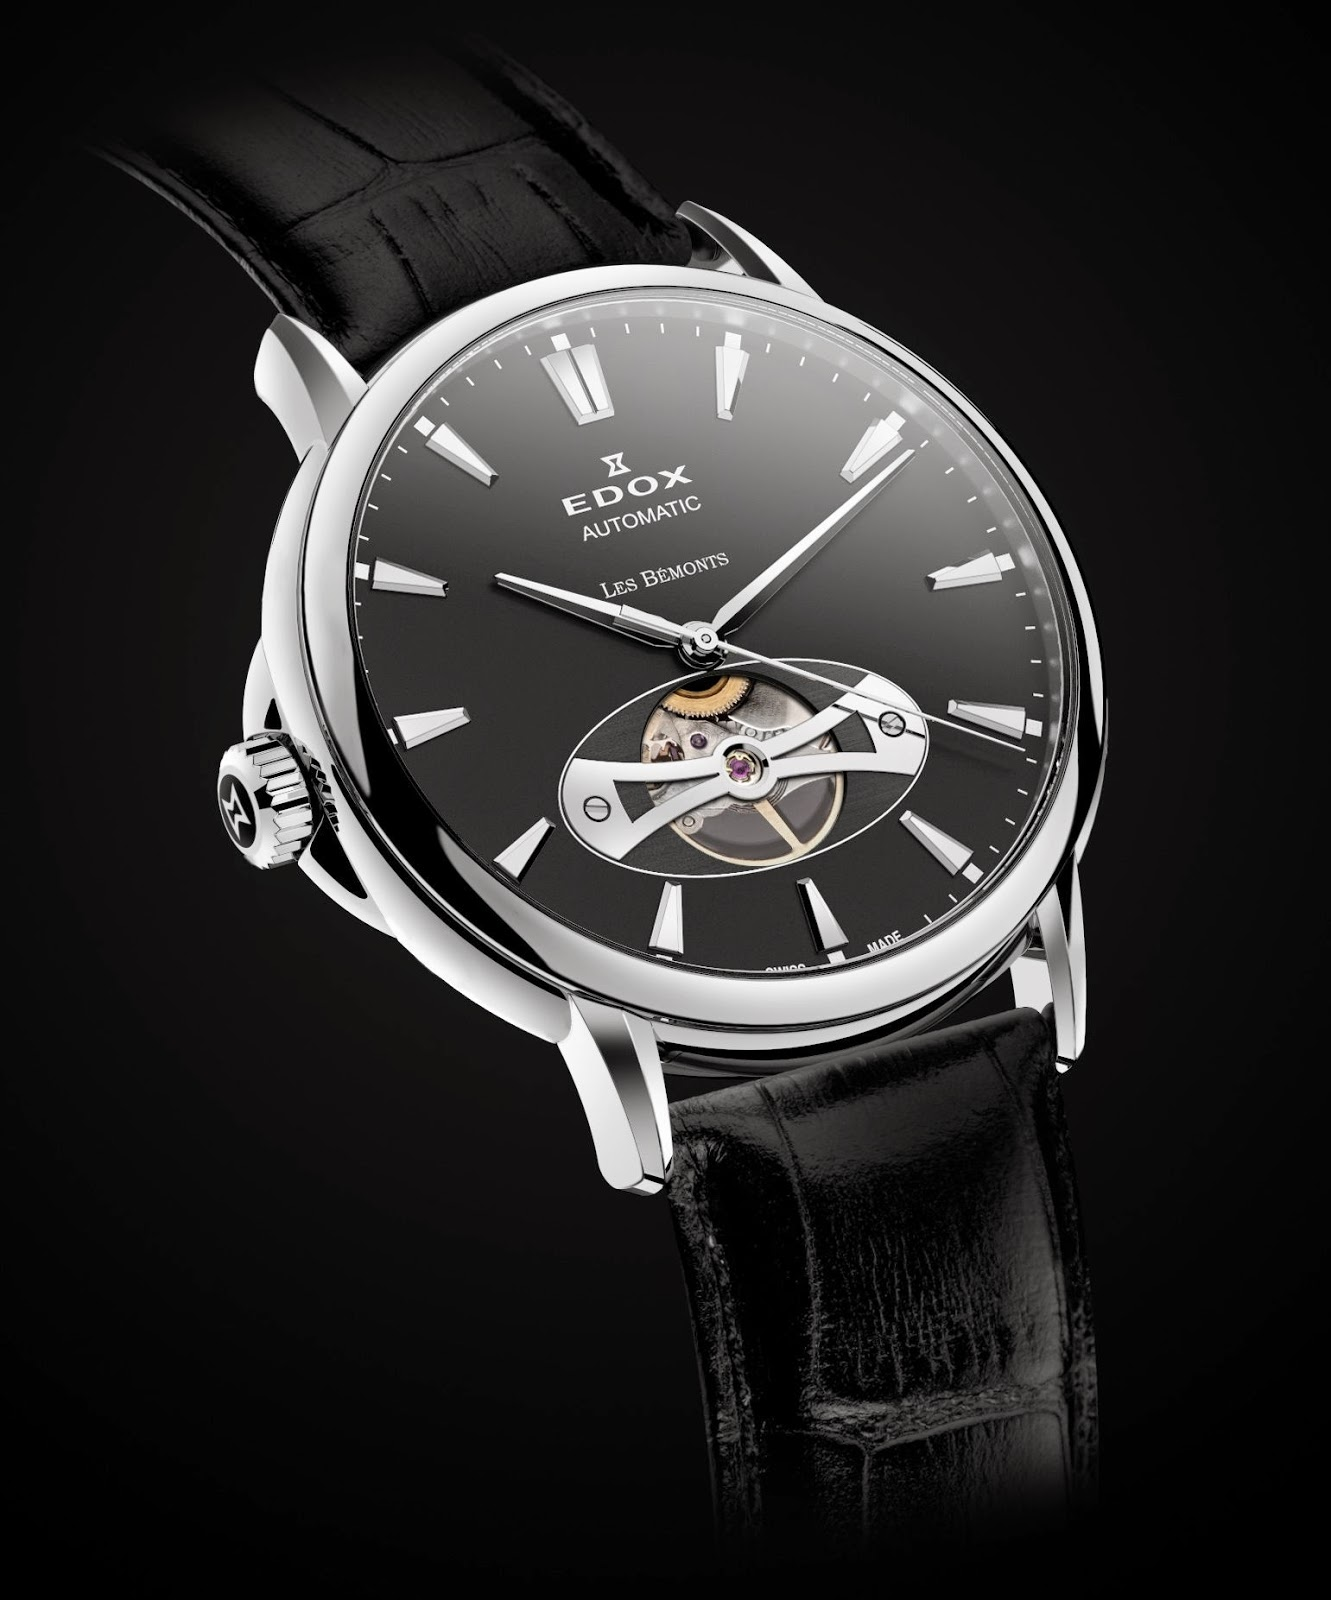 """... Les Bémonts Open Vision automatic features an """"open heart"""" window at 6  o clock revealing the balance wheel of the intricate mechanical workings  inside. c10f0197e47"""